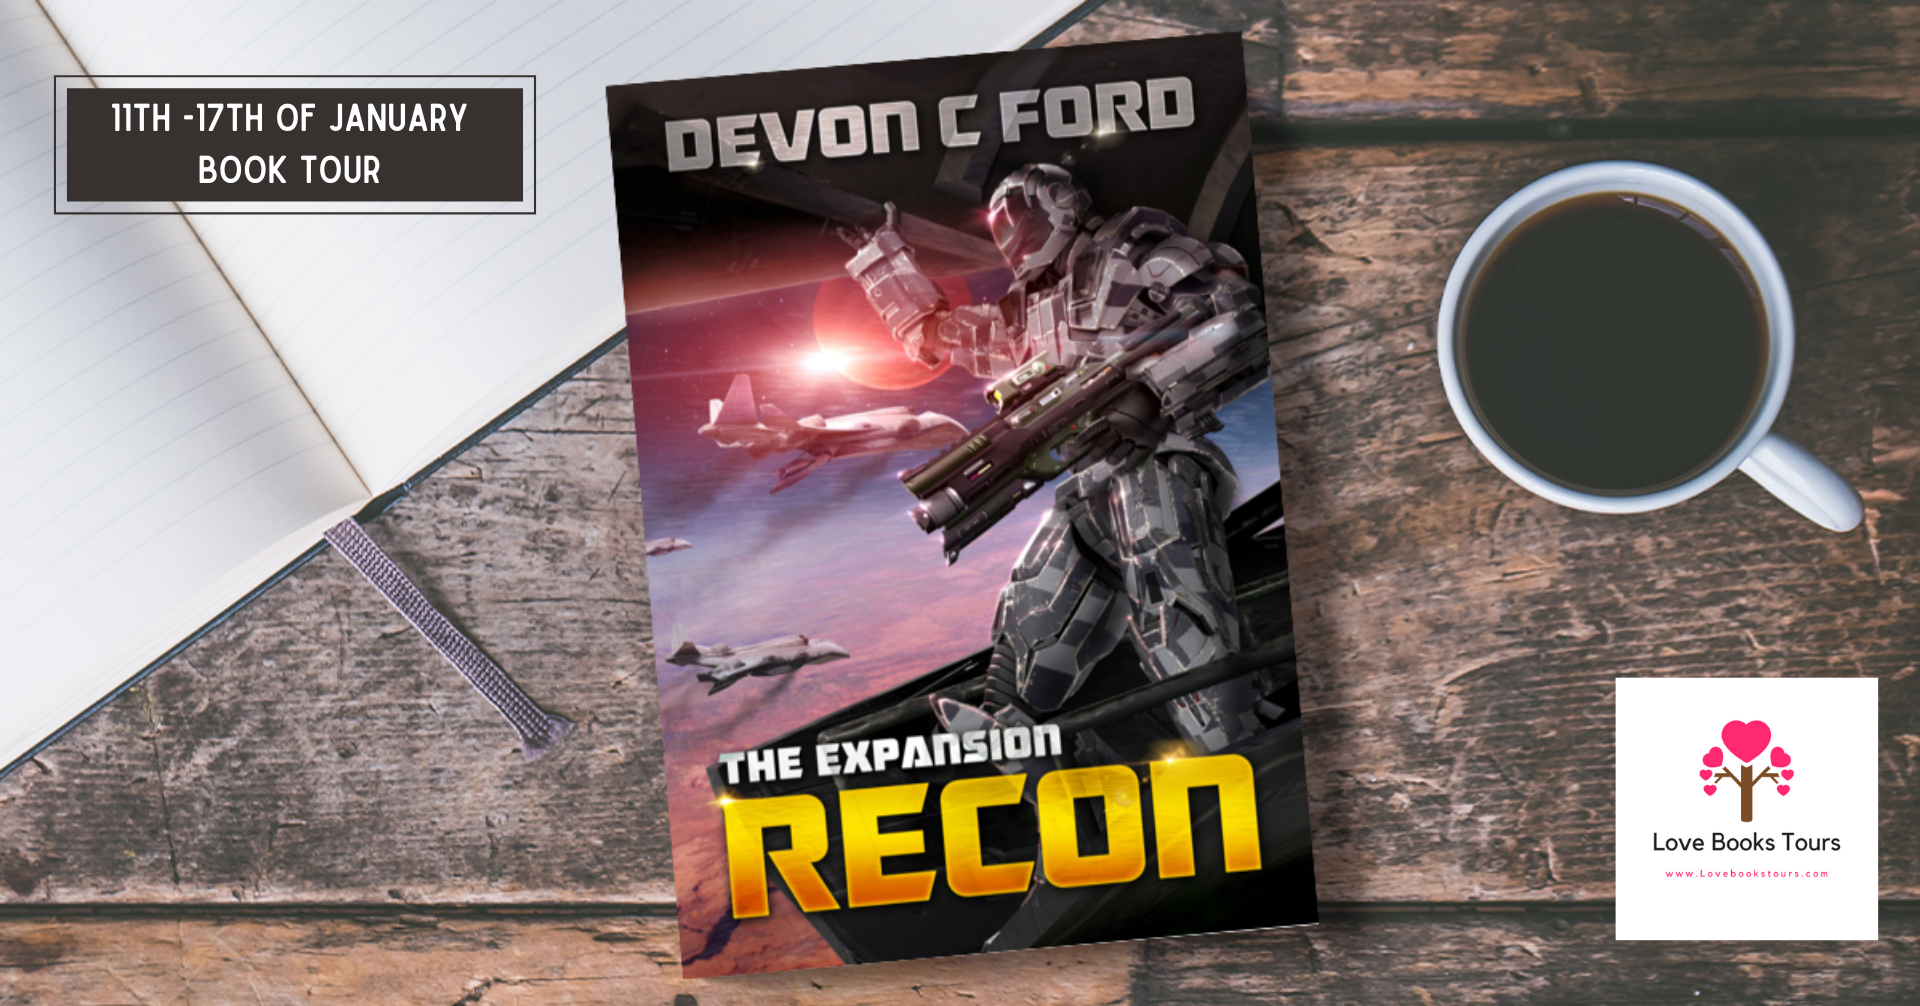 Recon (The Expansion Book 1) - Tour Poster